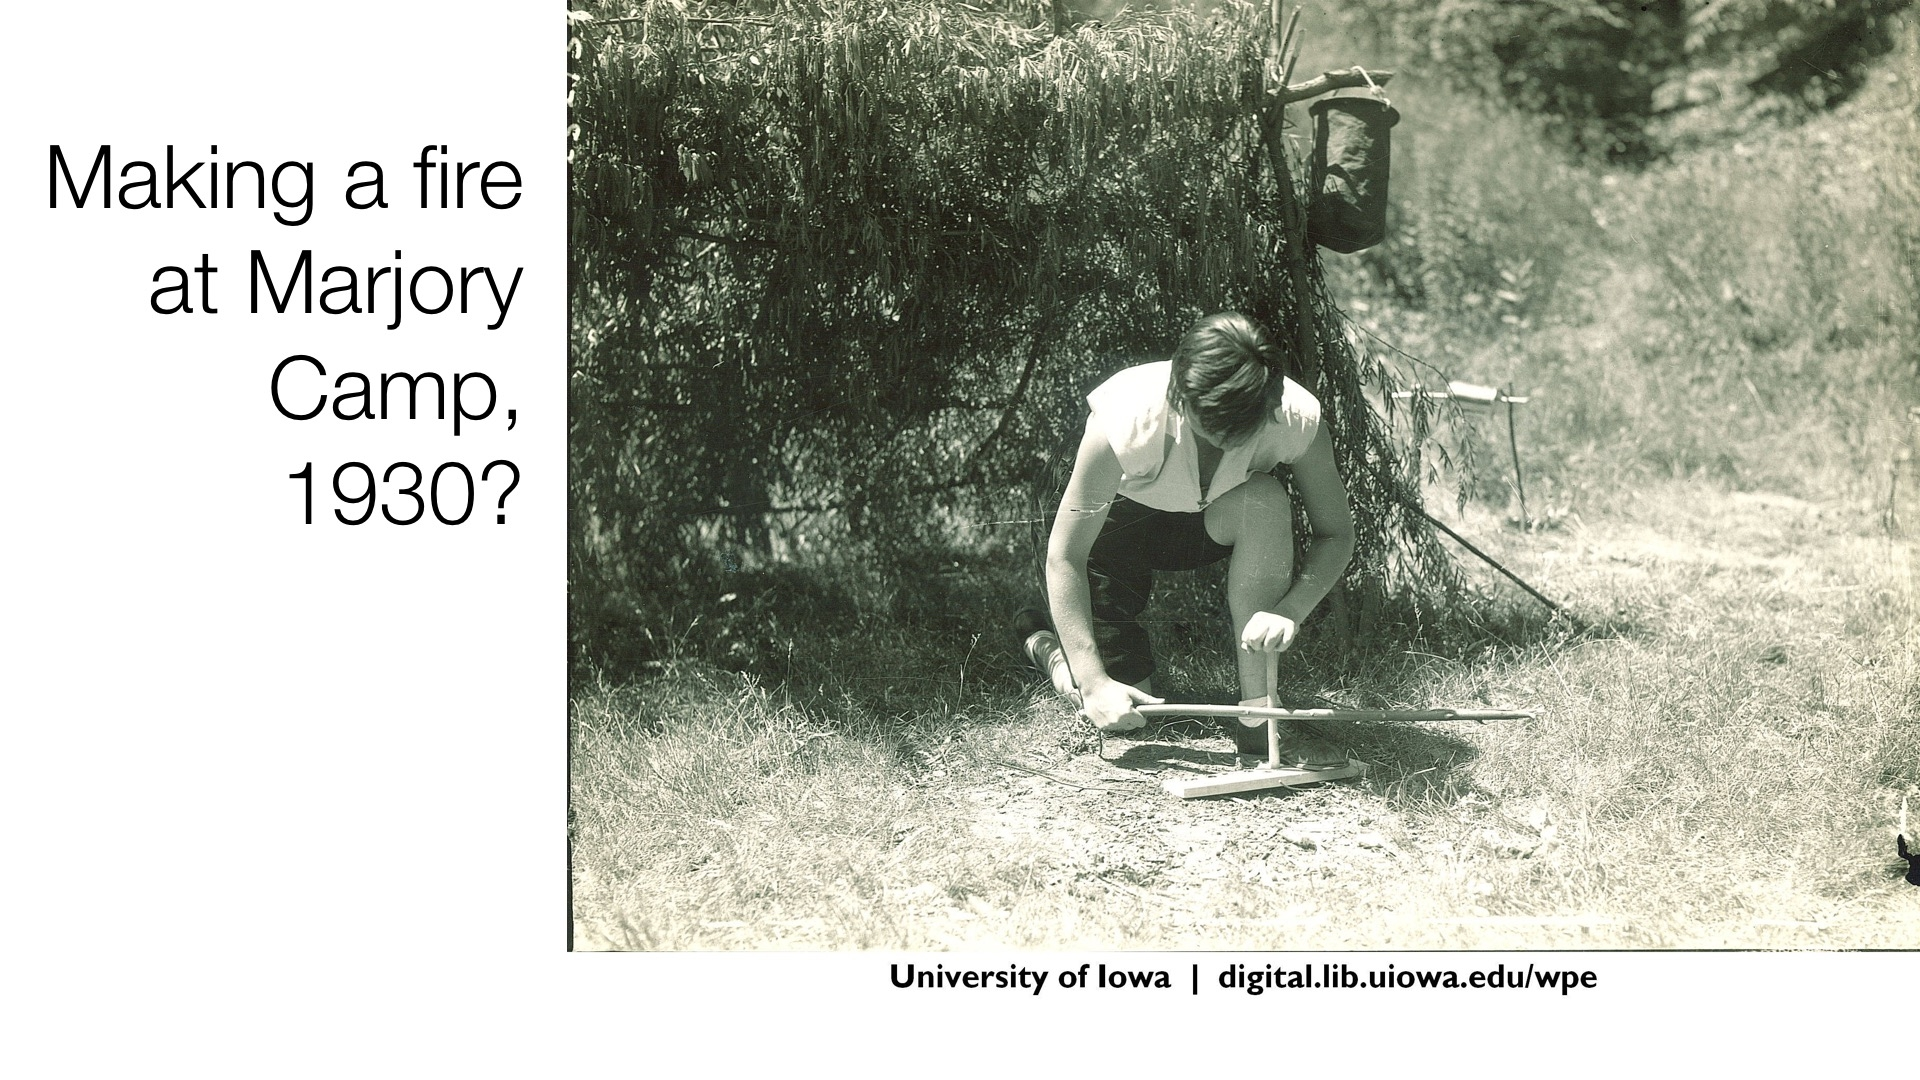 Making a fire at Marjory Camp 1930?